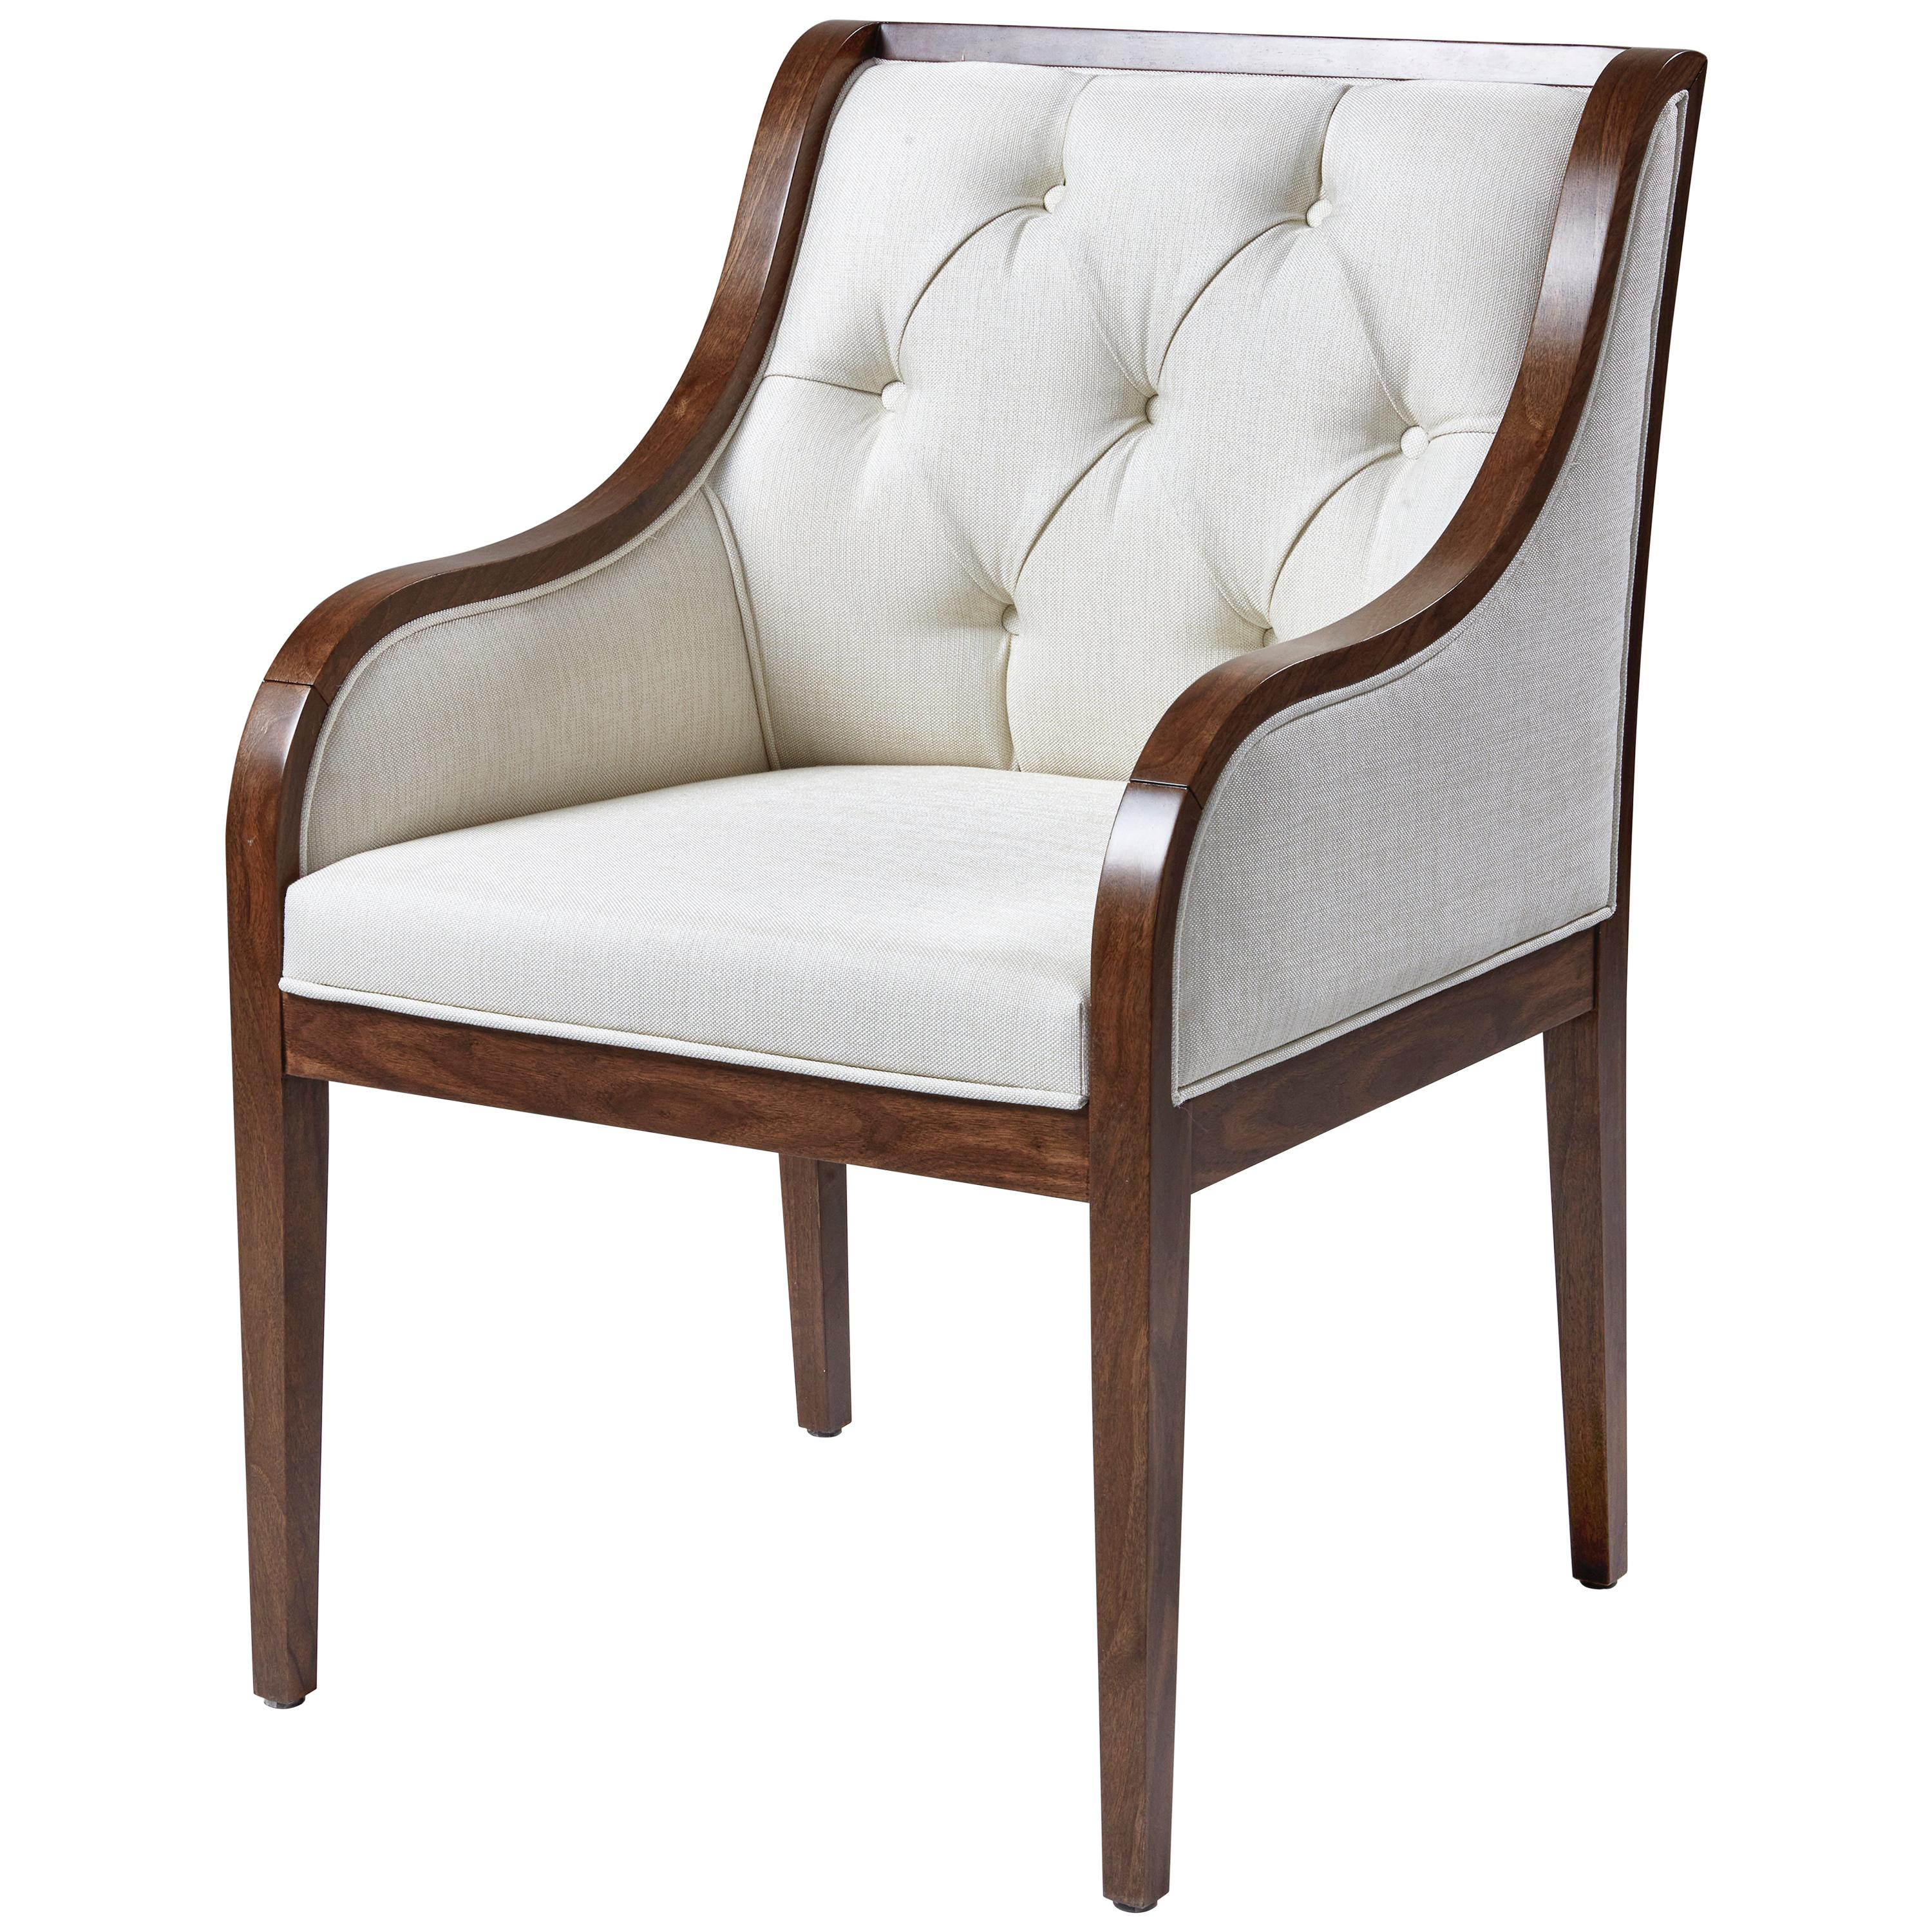 Florence Chair, Fully Upholstered in White Fabric and Framed in Wood Chair